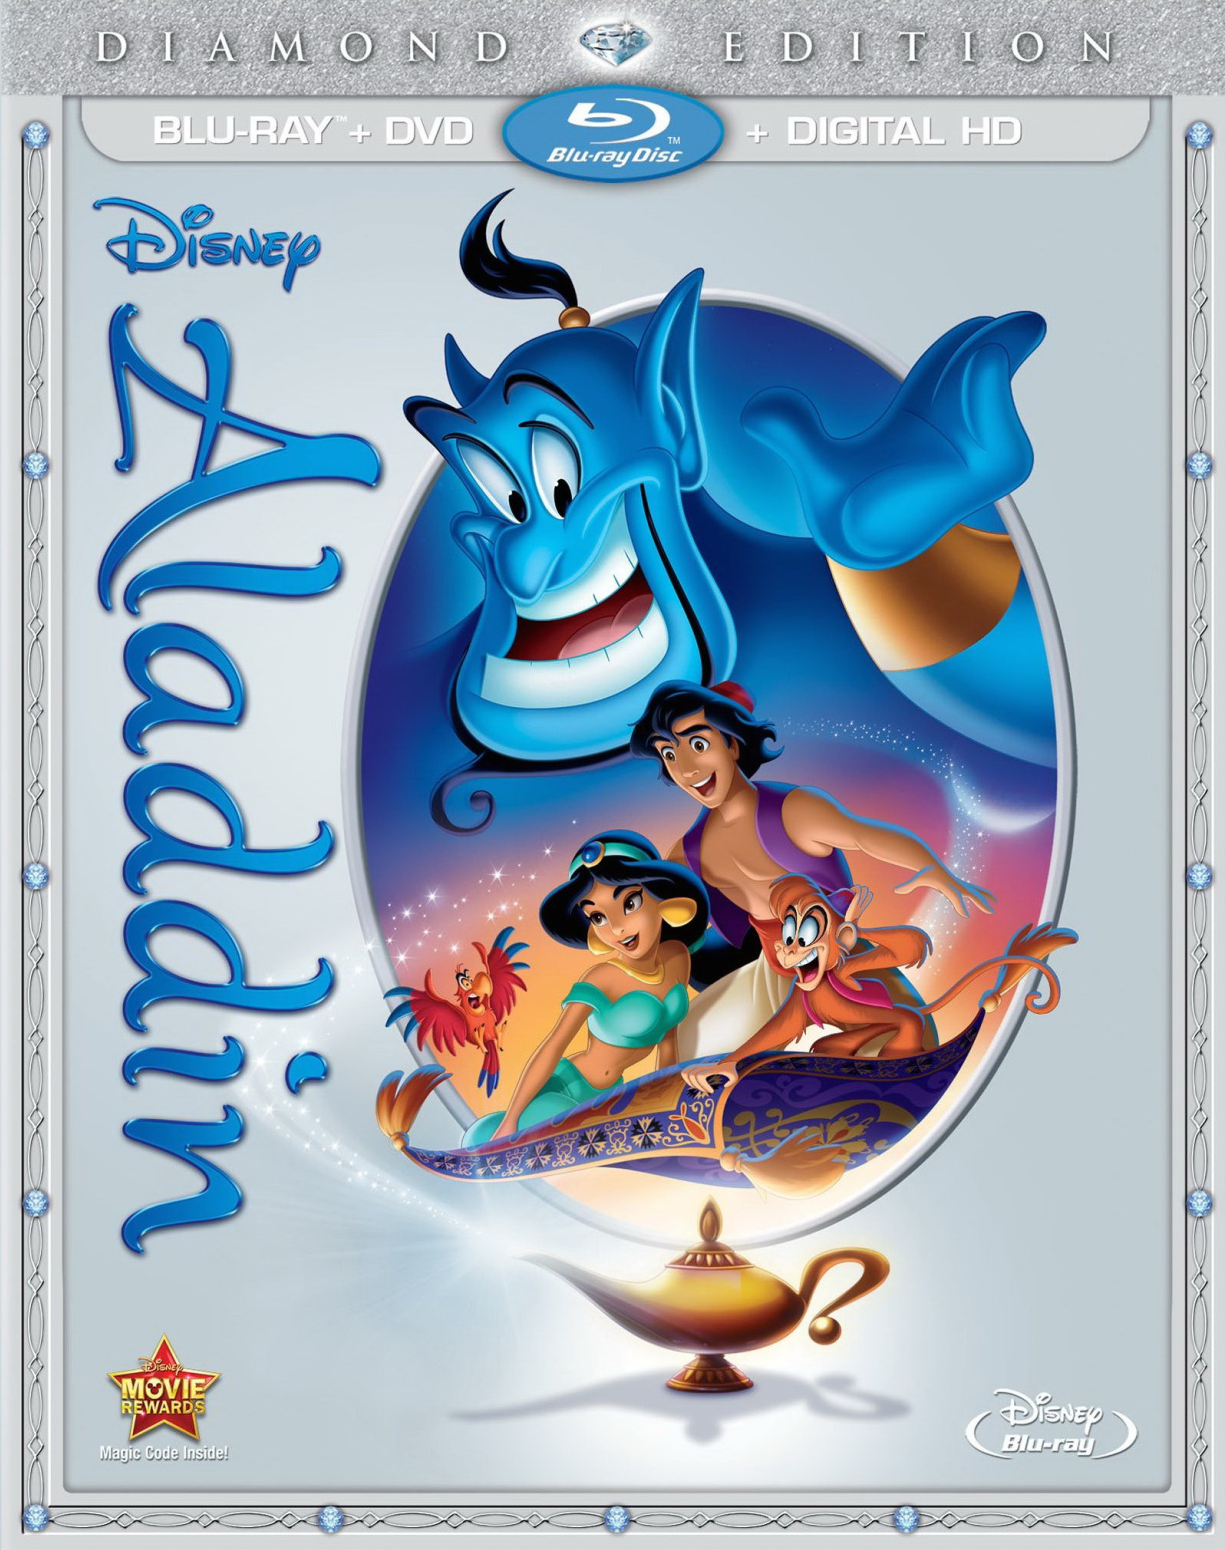 Snow white and the seven dwarfs diamond edition blu-ray/dvd combo.